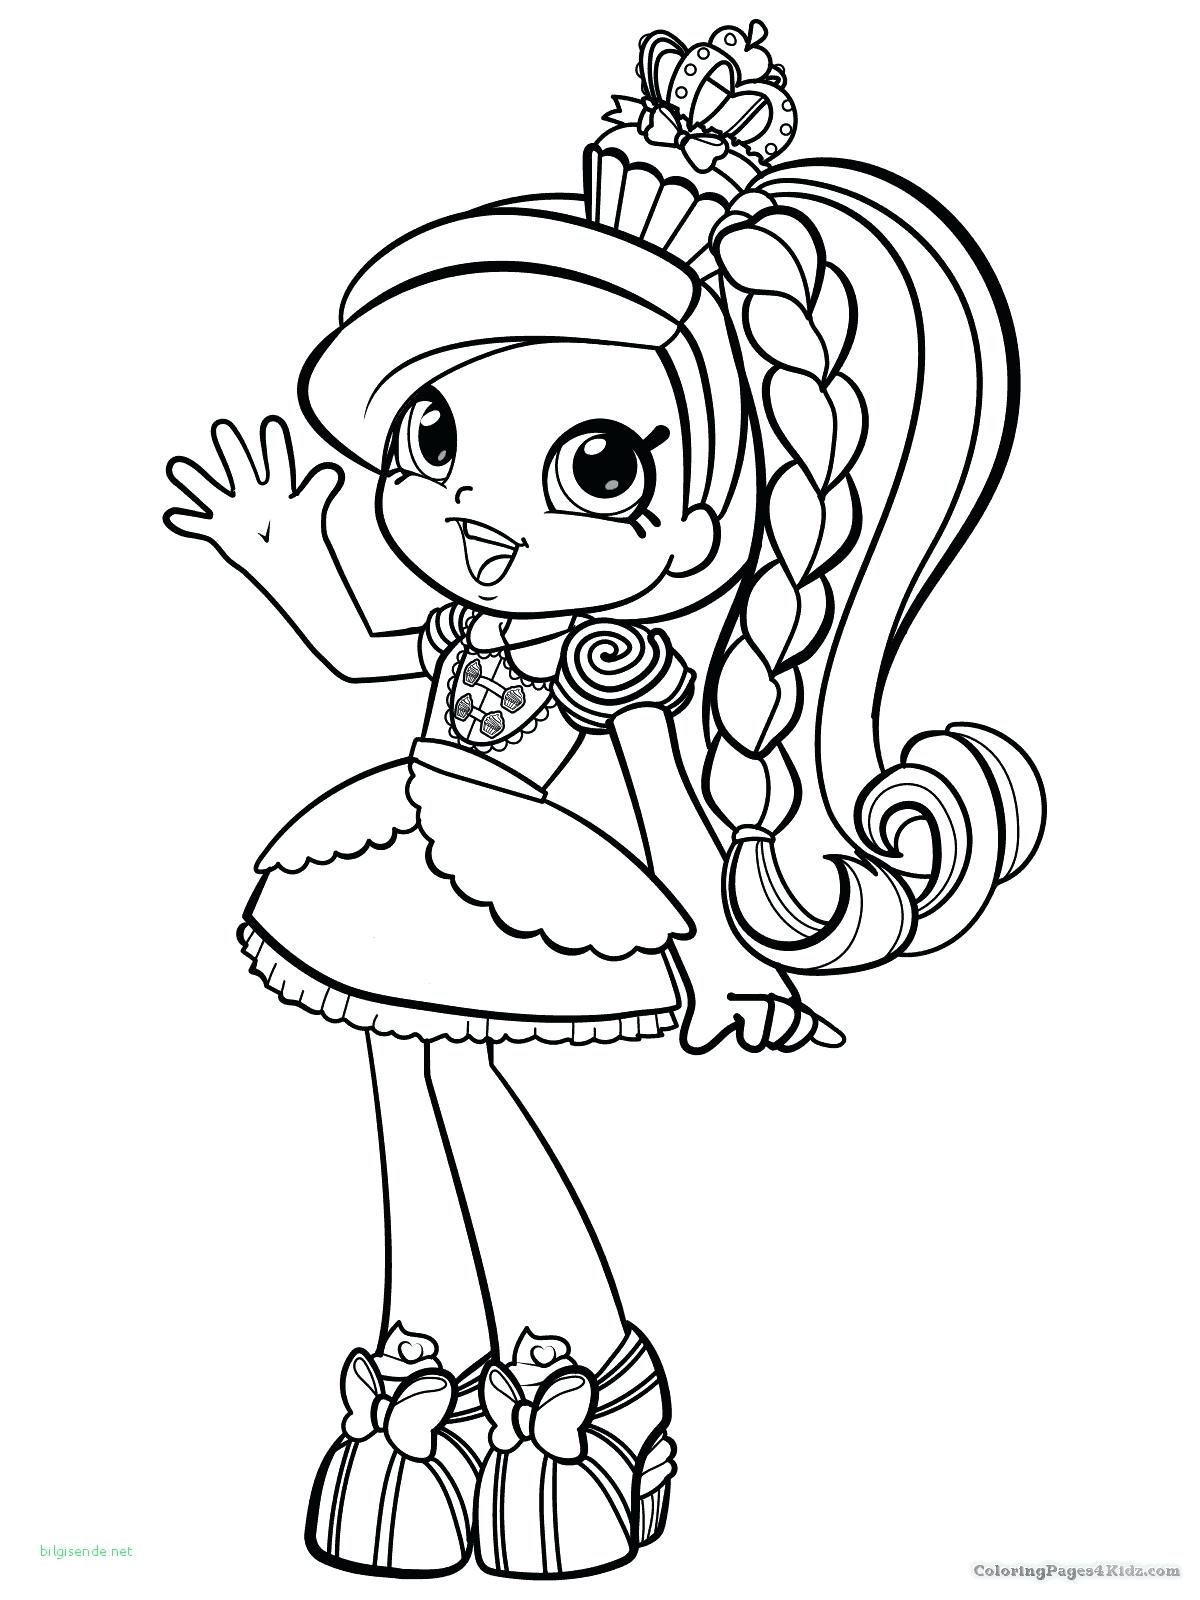 Top 27 Marvelous Printables For Girls Coloring Pages ...